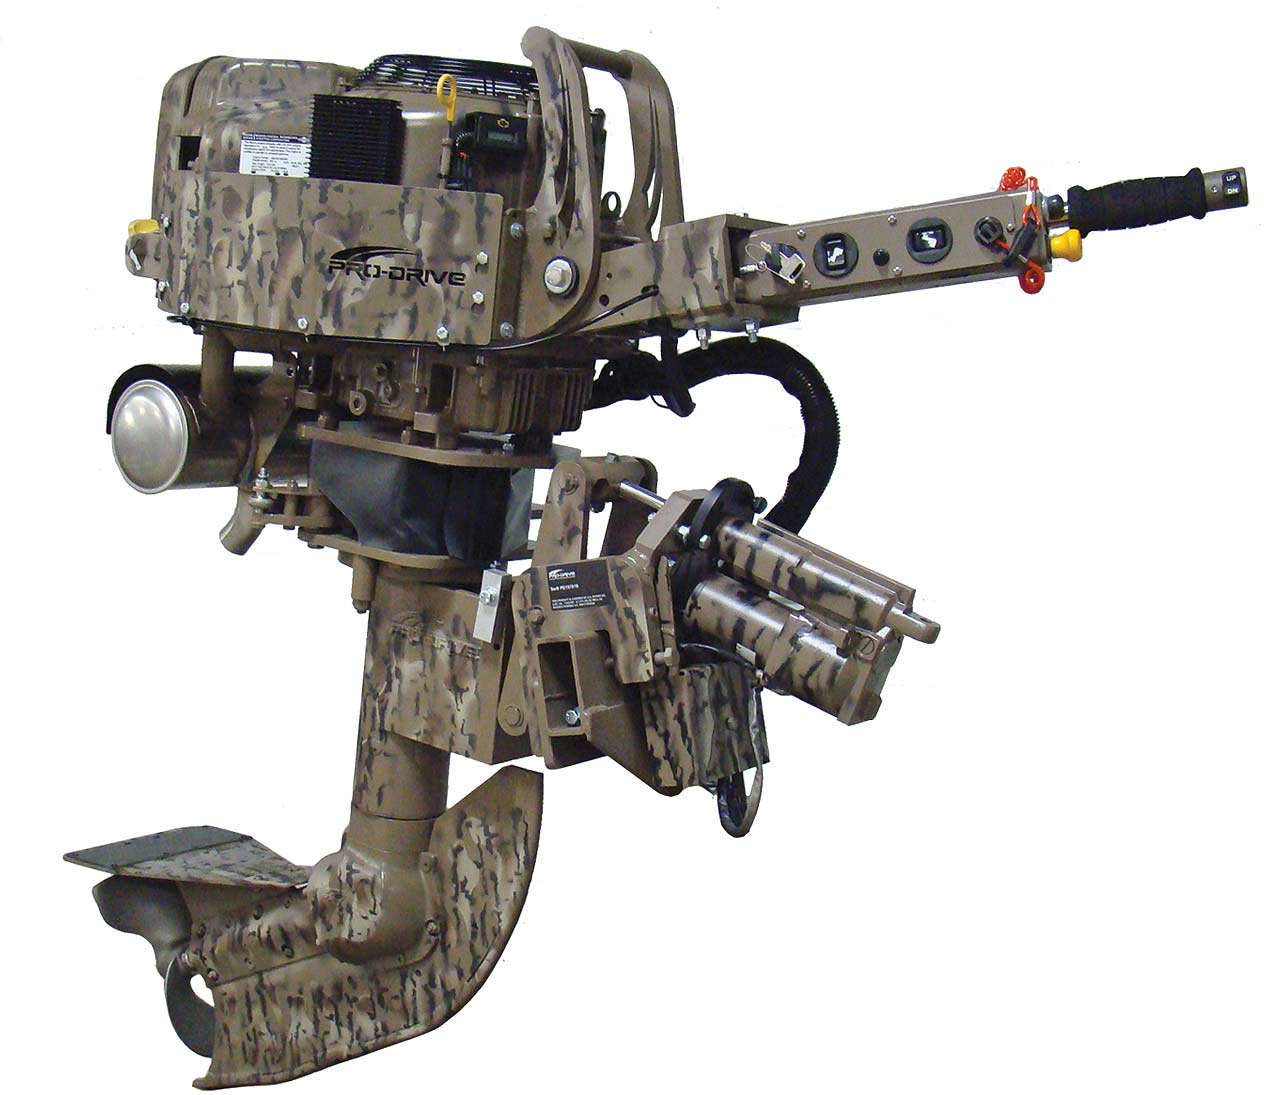 shallow water outboard for hunting and fishing